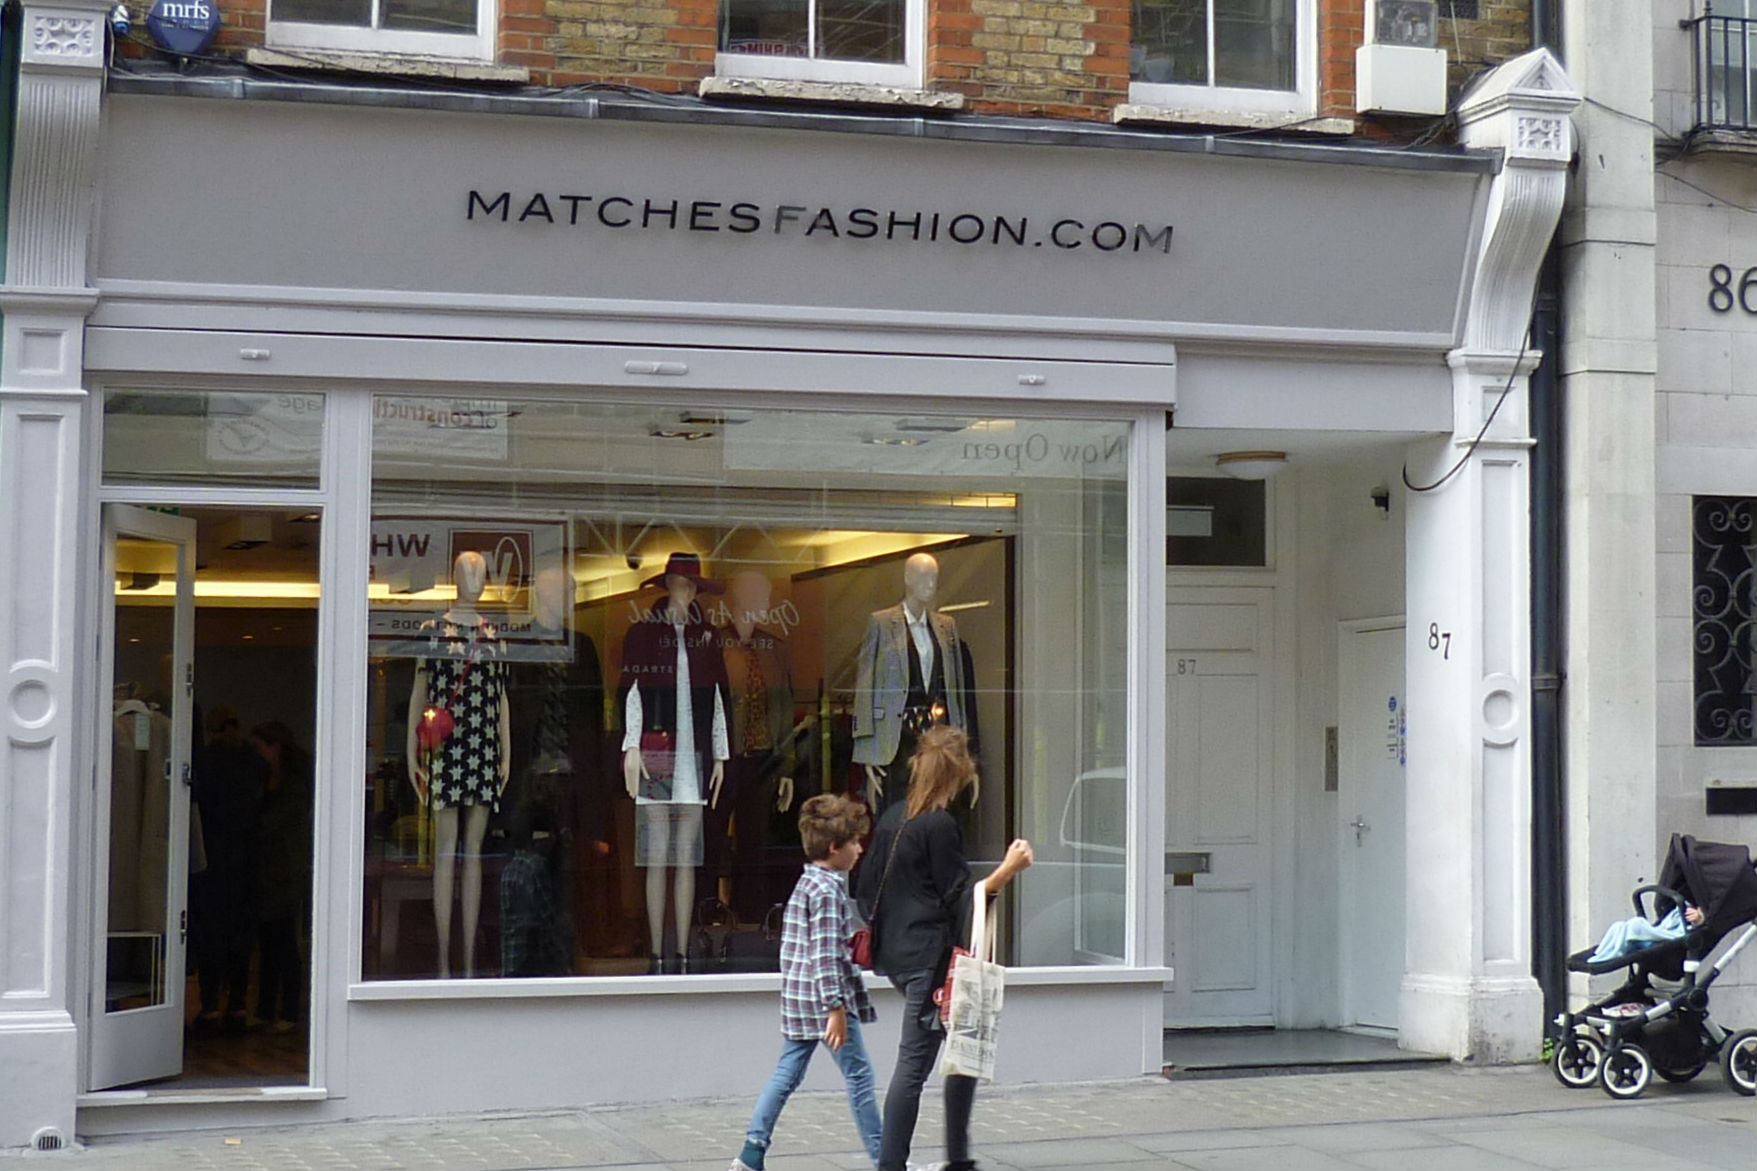 MATCHESFASHION Has Been Bought For $1 Billion USD